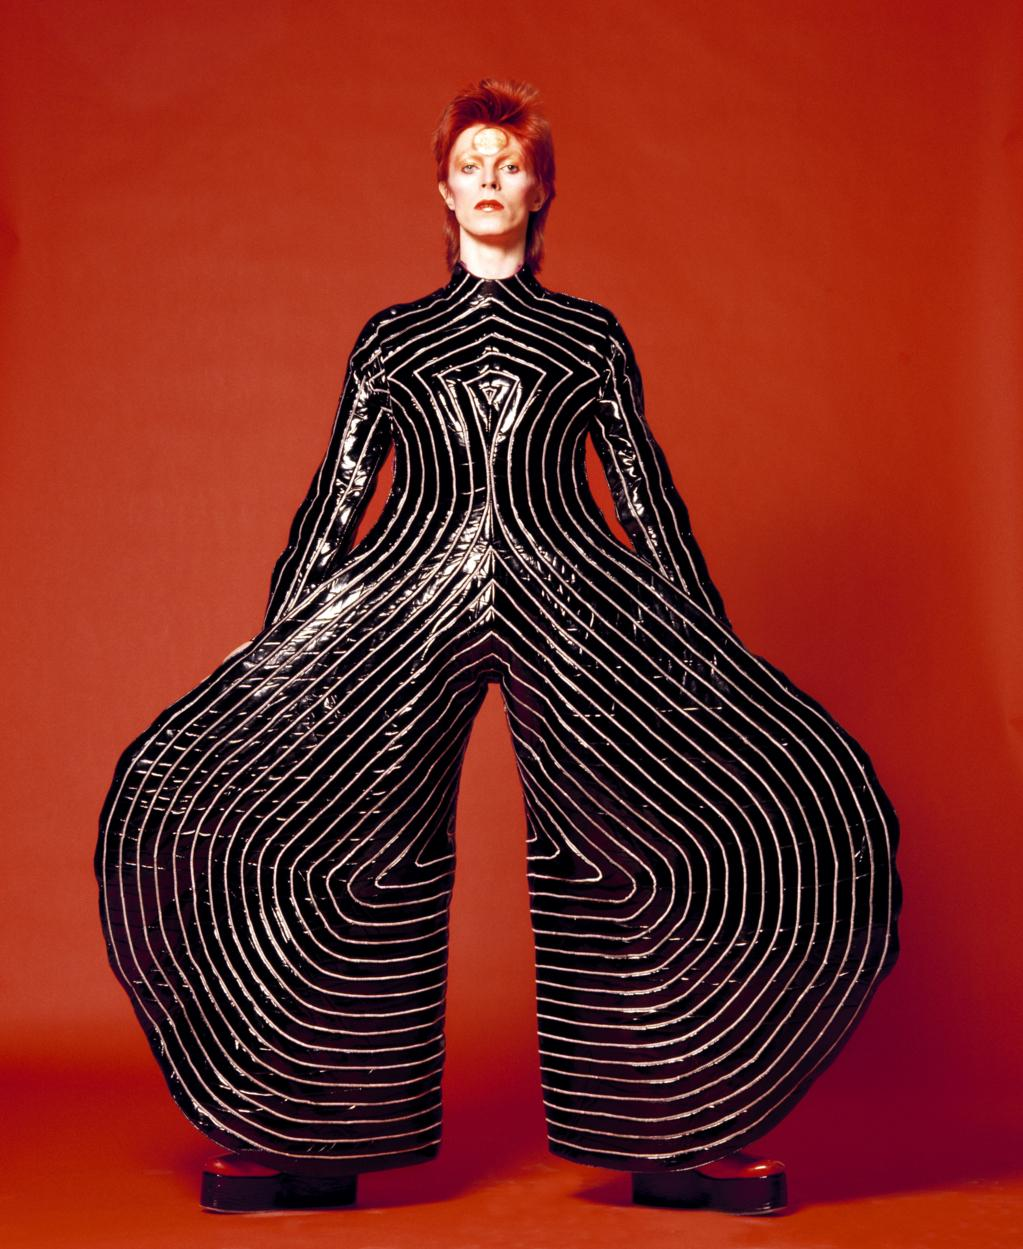 RT @i_D: Five items that give us a look into the brilliant mind of David Bowie: http://t.co/W9r00lDmdV http://t.co/BOKcqyrj7t